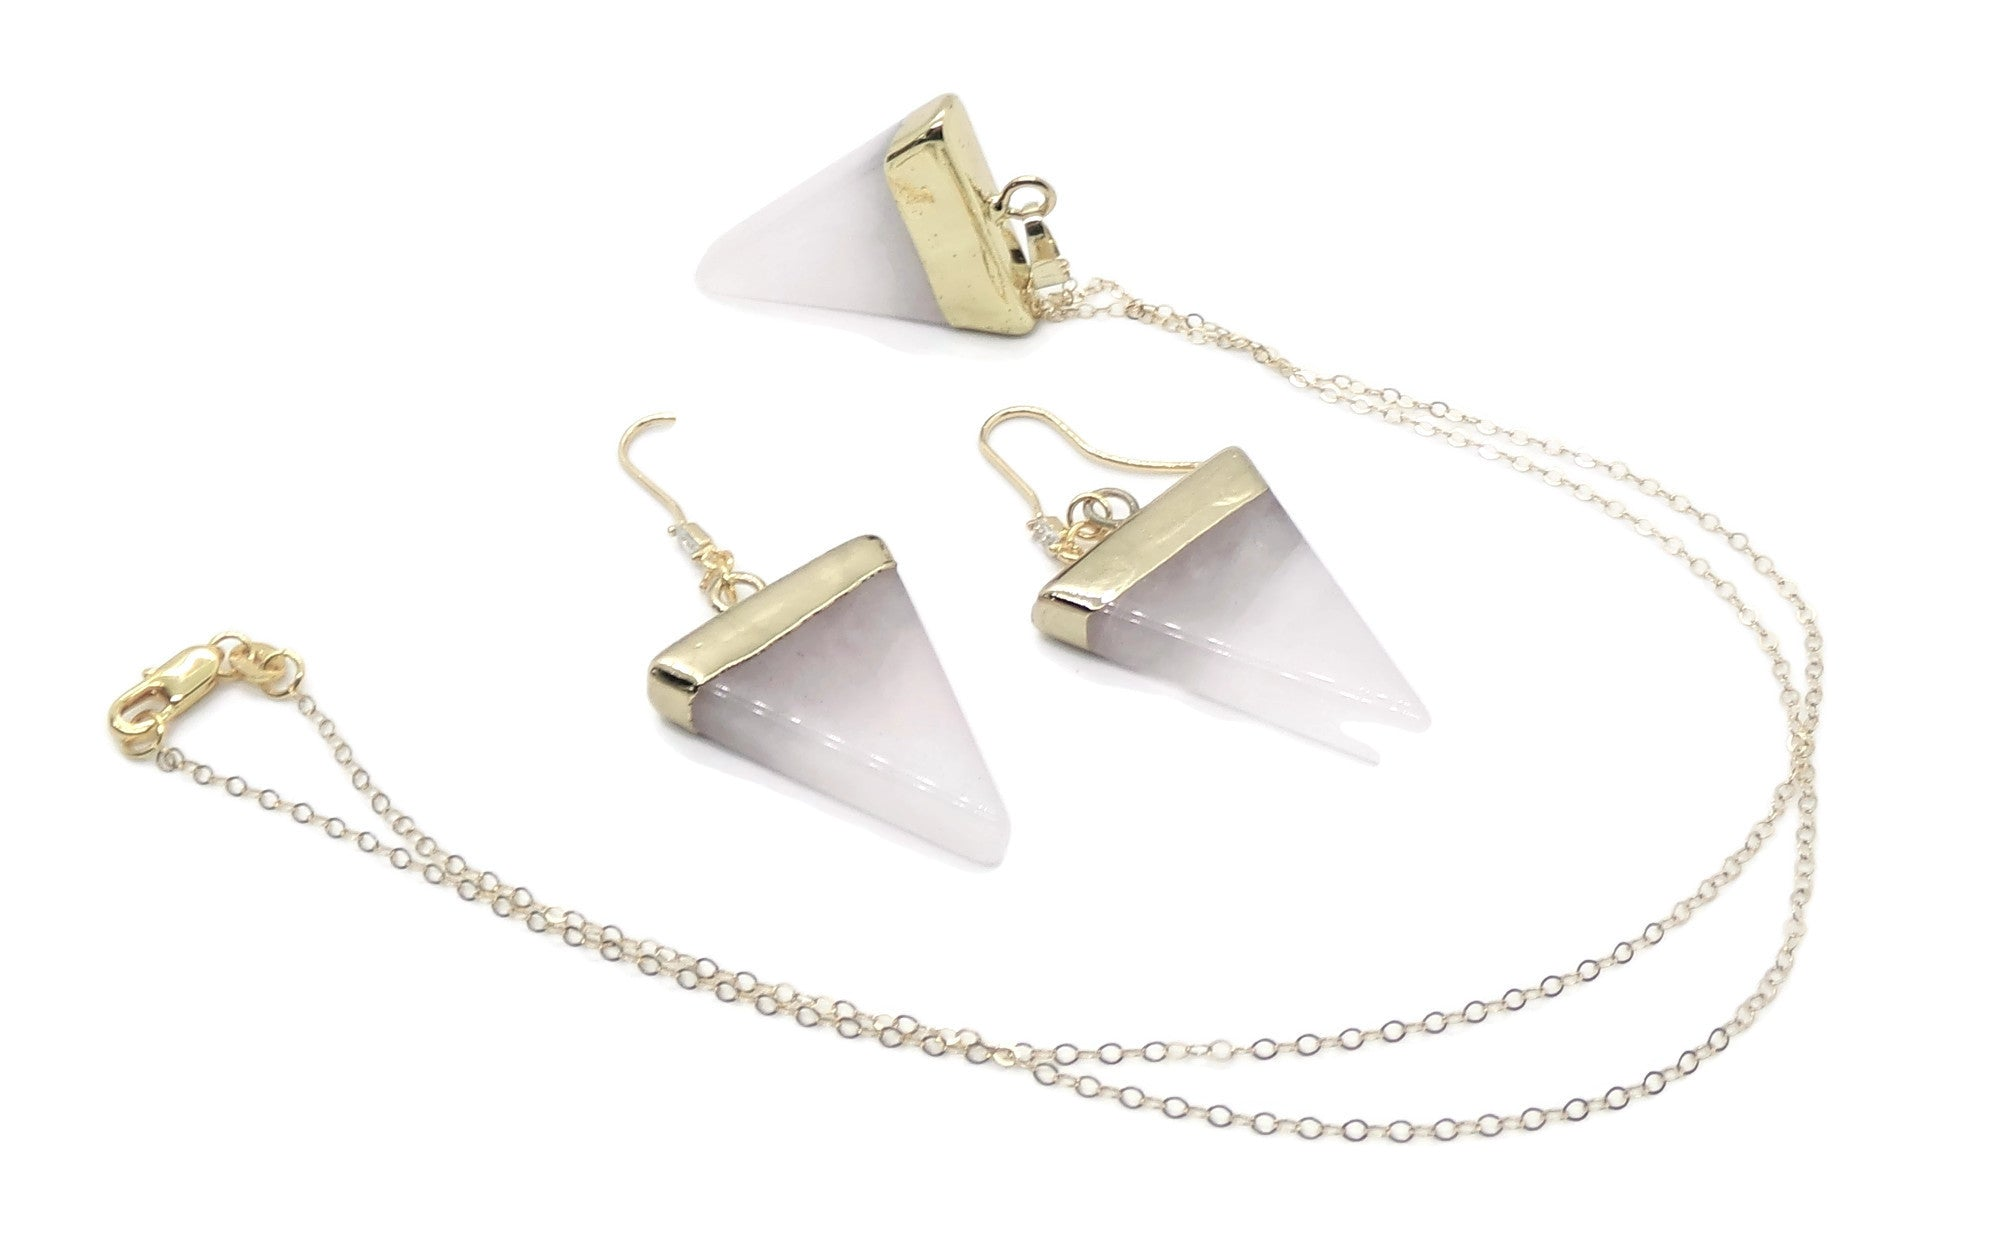 Rose Quartz Triangle Pendant & Earrings 24k Gold Leaf  14kgf Trio Jewelry Set, Gift for Her, Rose Quartz Jewelry Trio, Women's  Gift